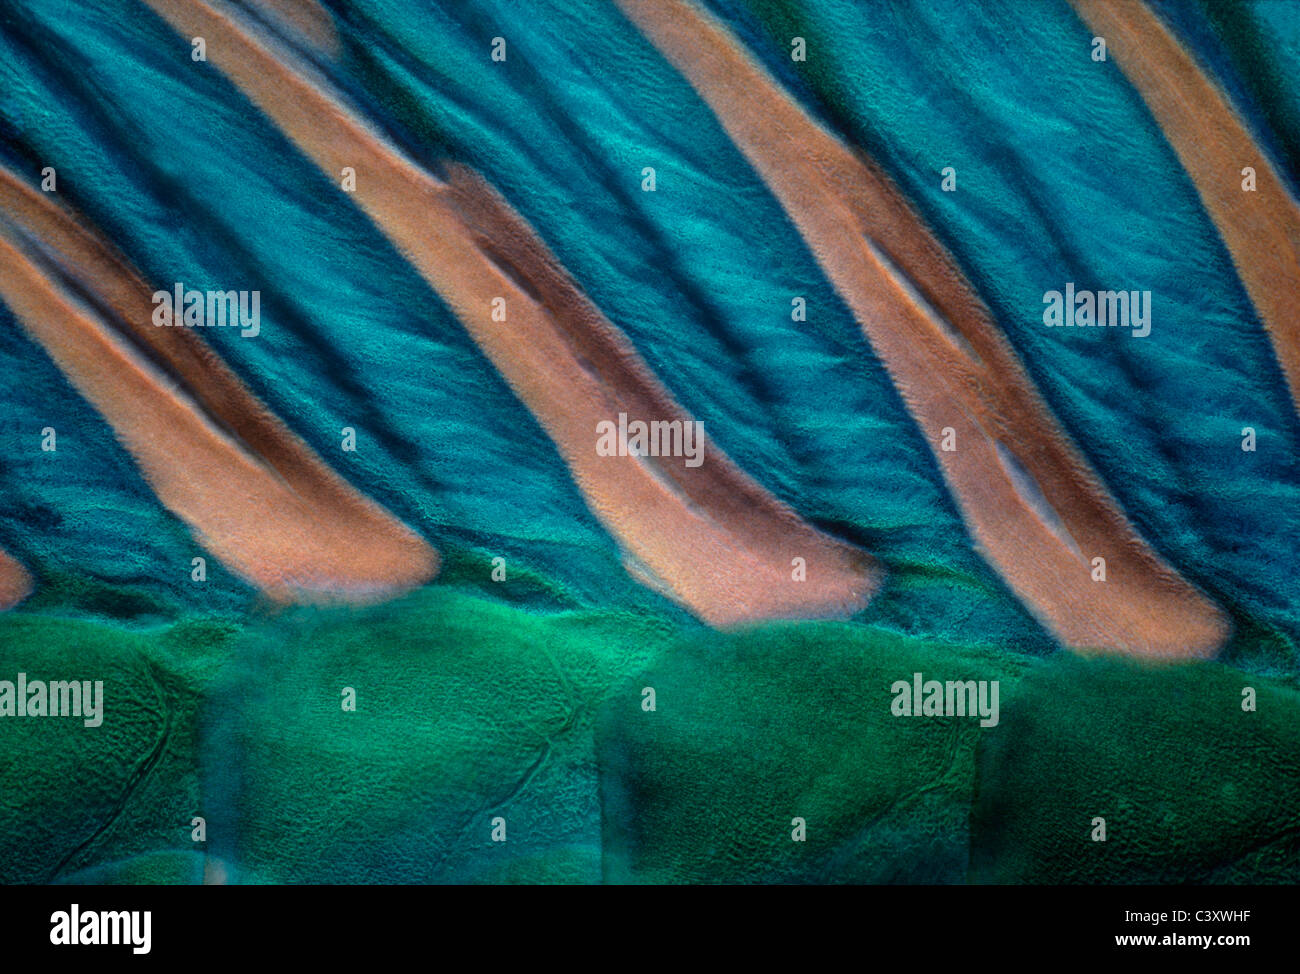 Skin and dorsal spines of Bicolor Parrotfish (Cetoscarus bicolor). Egypt, Red Sea. Stock Photo